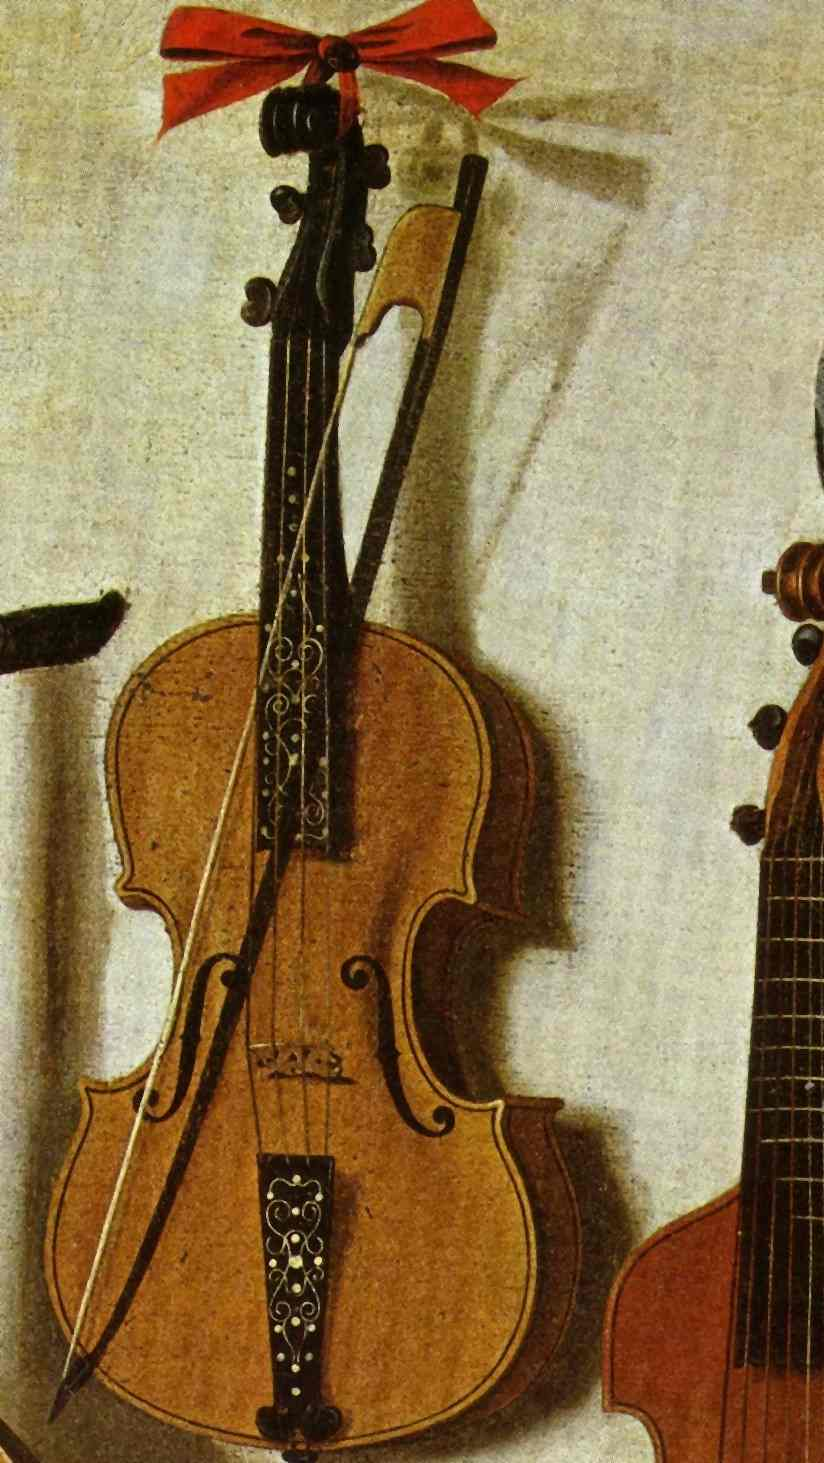 Old wood minerale interior of violin - String King Web Shop Gut Strings Baroque Bridges Music Accessories Comfort Products Historical Bows Rosins Bow Holders And Many More In One Palce